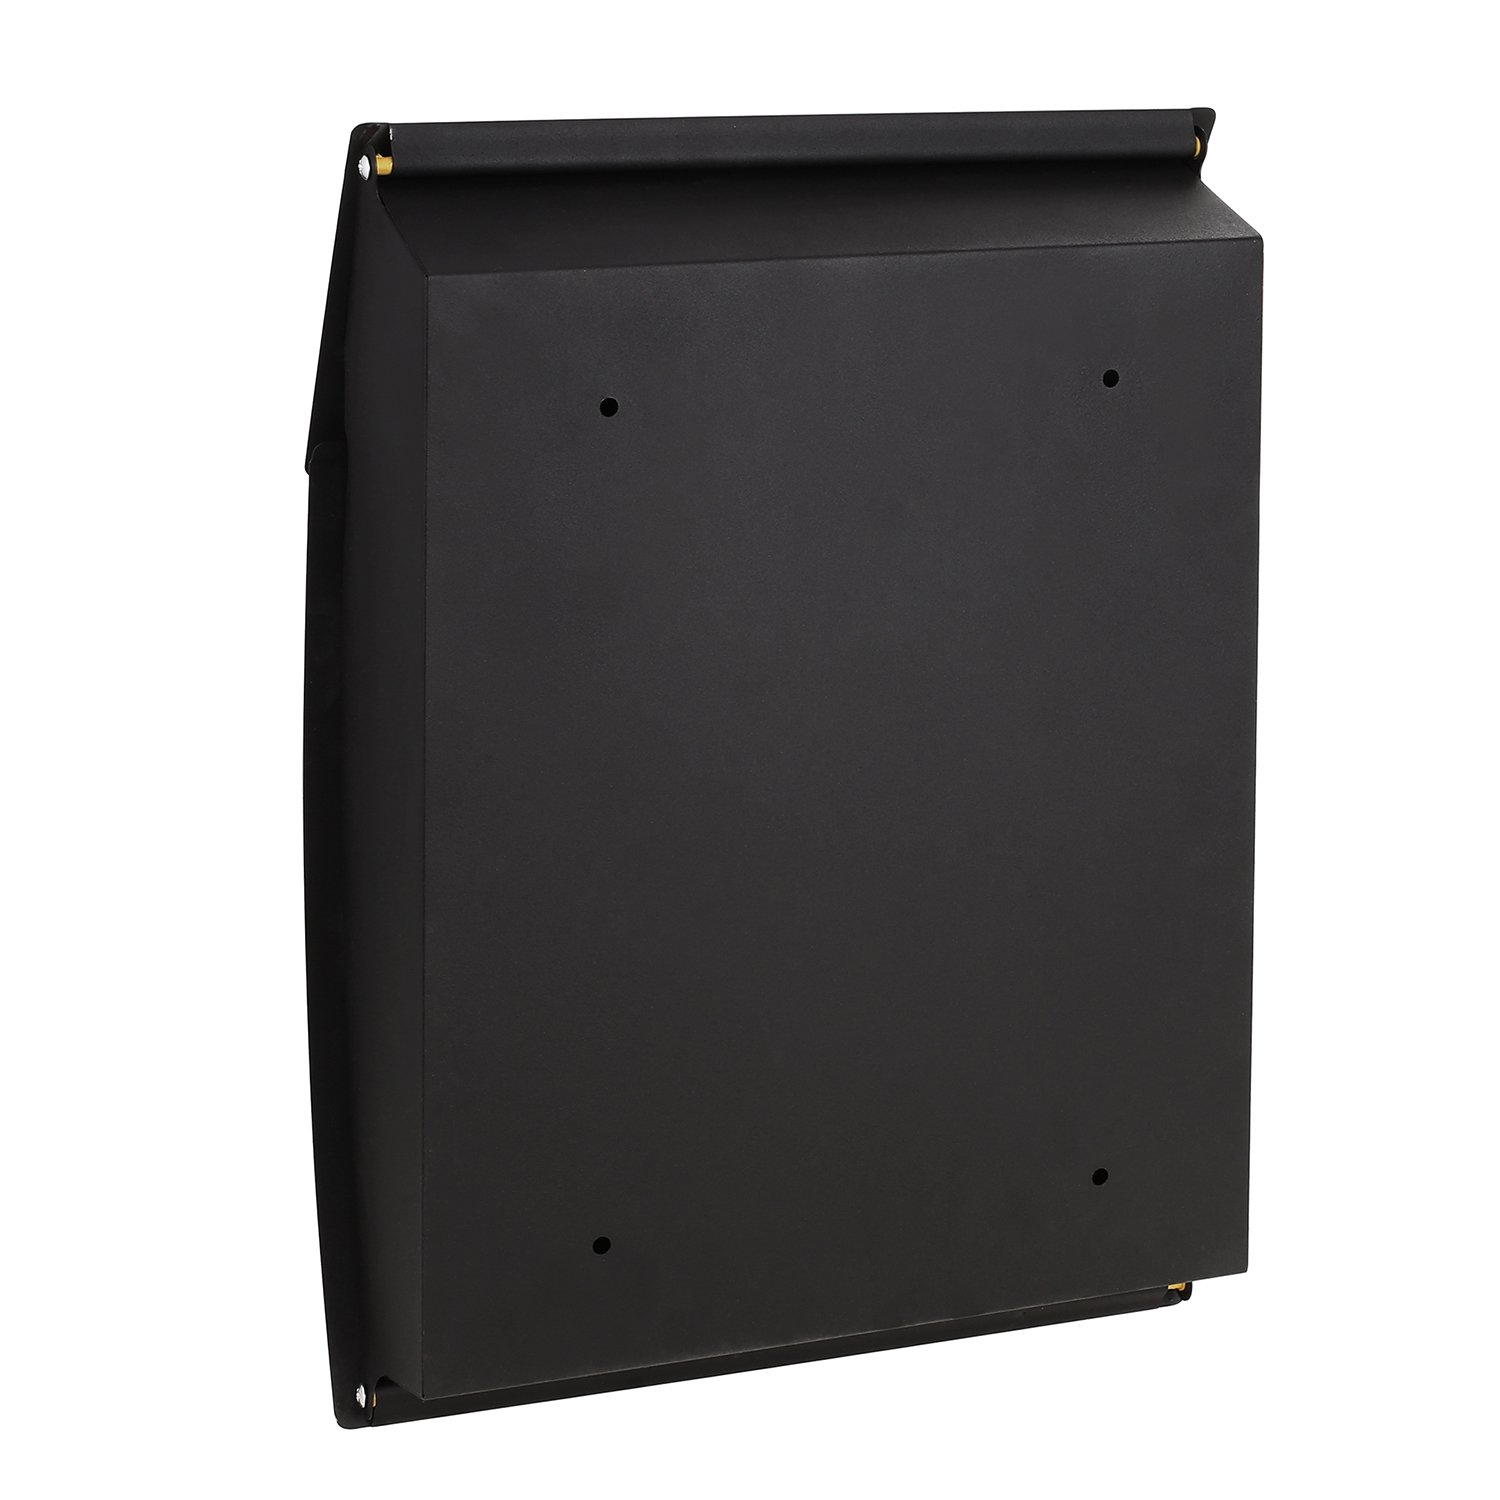 Homdox Wall Mounted Mail Letter Post Box A4 Steel Mailbox with Newspaper Holder and Name Plate Outside Black Lockable Waterproof